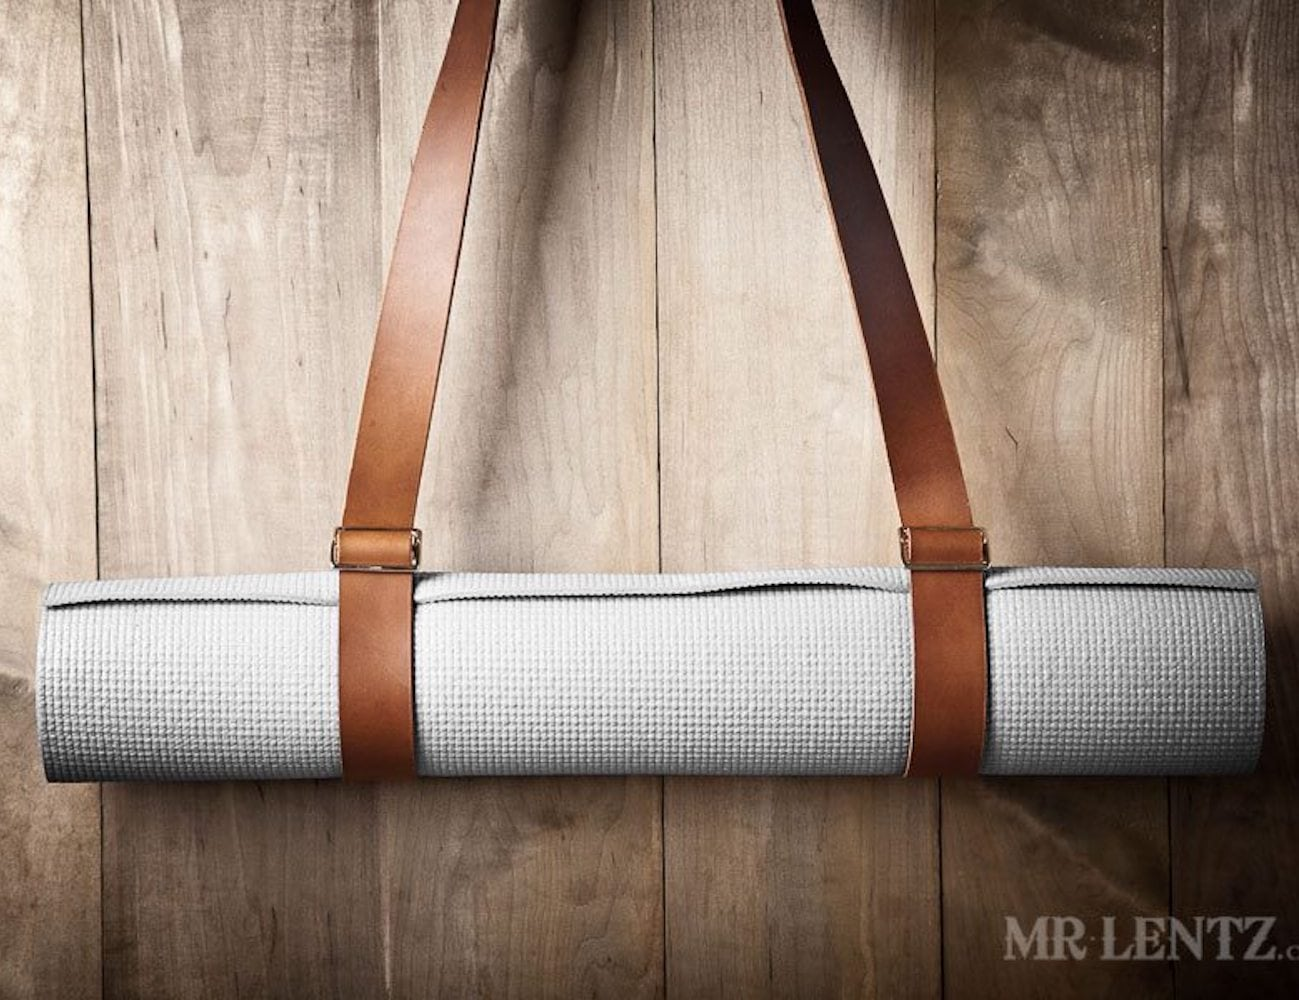 Mr. Lentz Leather Yoga Mat Strap